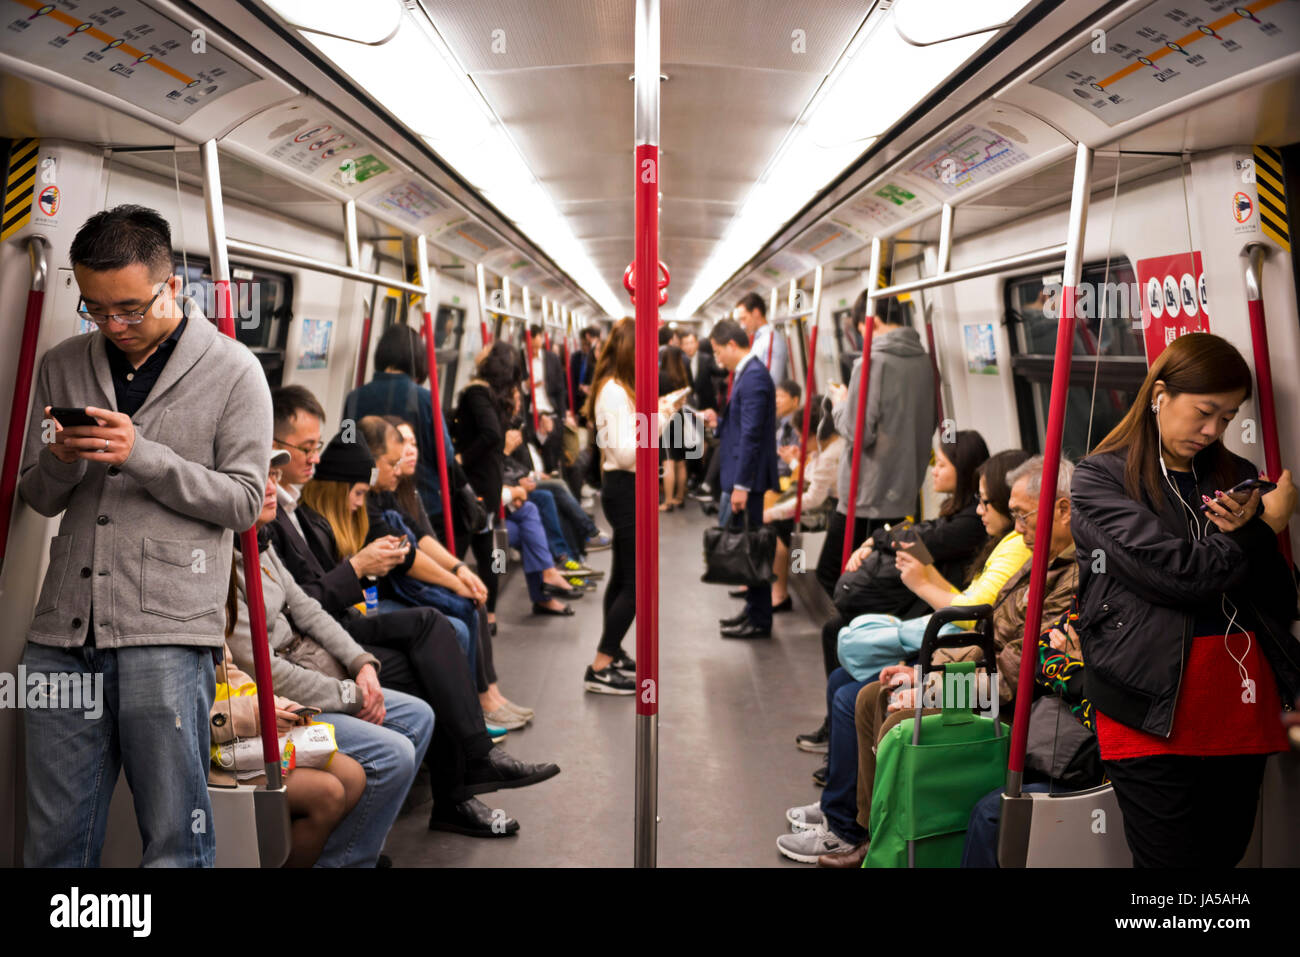 Image result for metro rail hong kong passengers